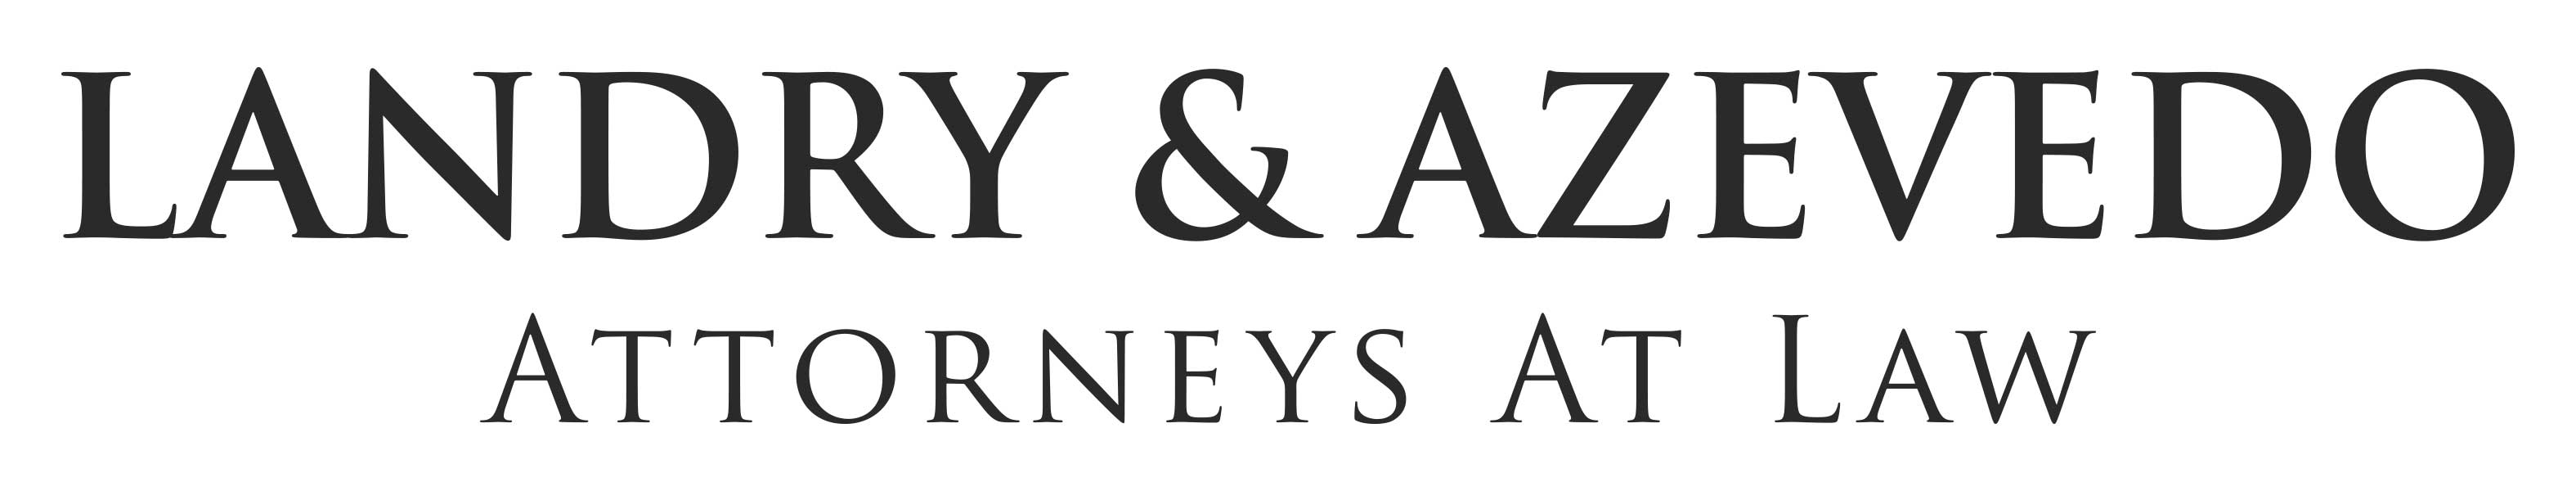 Landry & Azevedo Attorneys At Law